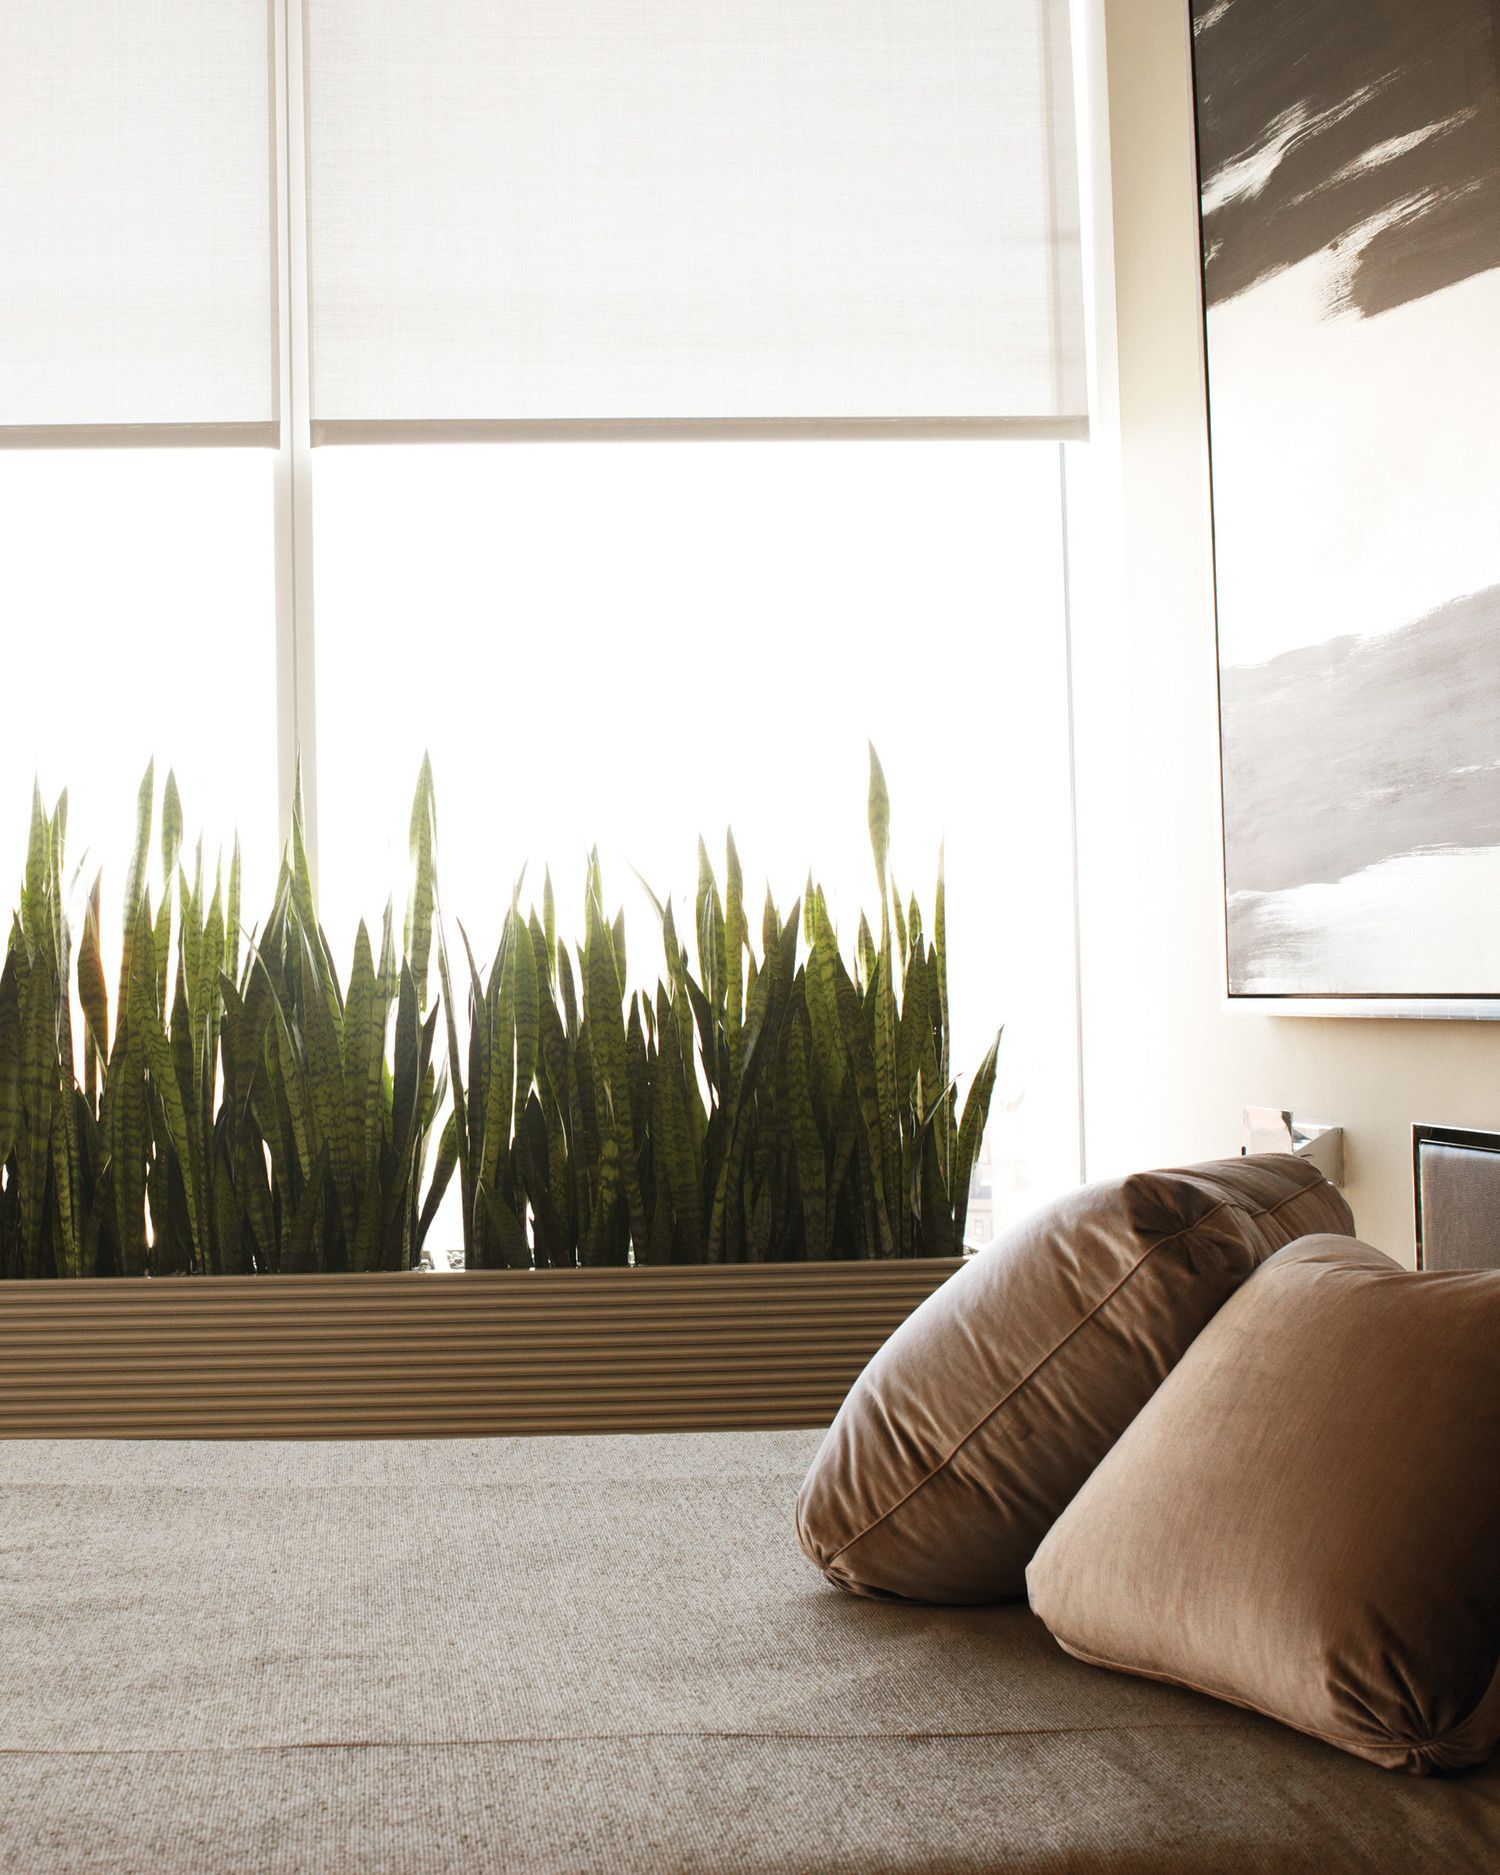 House Plants For Shady Rooms: Kevin's Houseplant Ideas And Care Tips